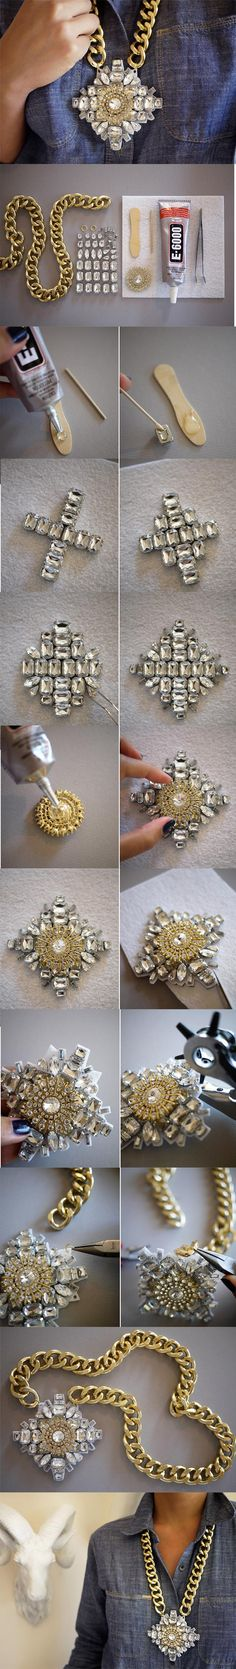 Crystal Necklace – DIY; This would look great in a smaller size or maybe as some earrings with a similar technique